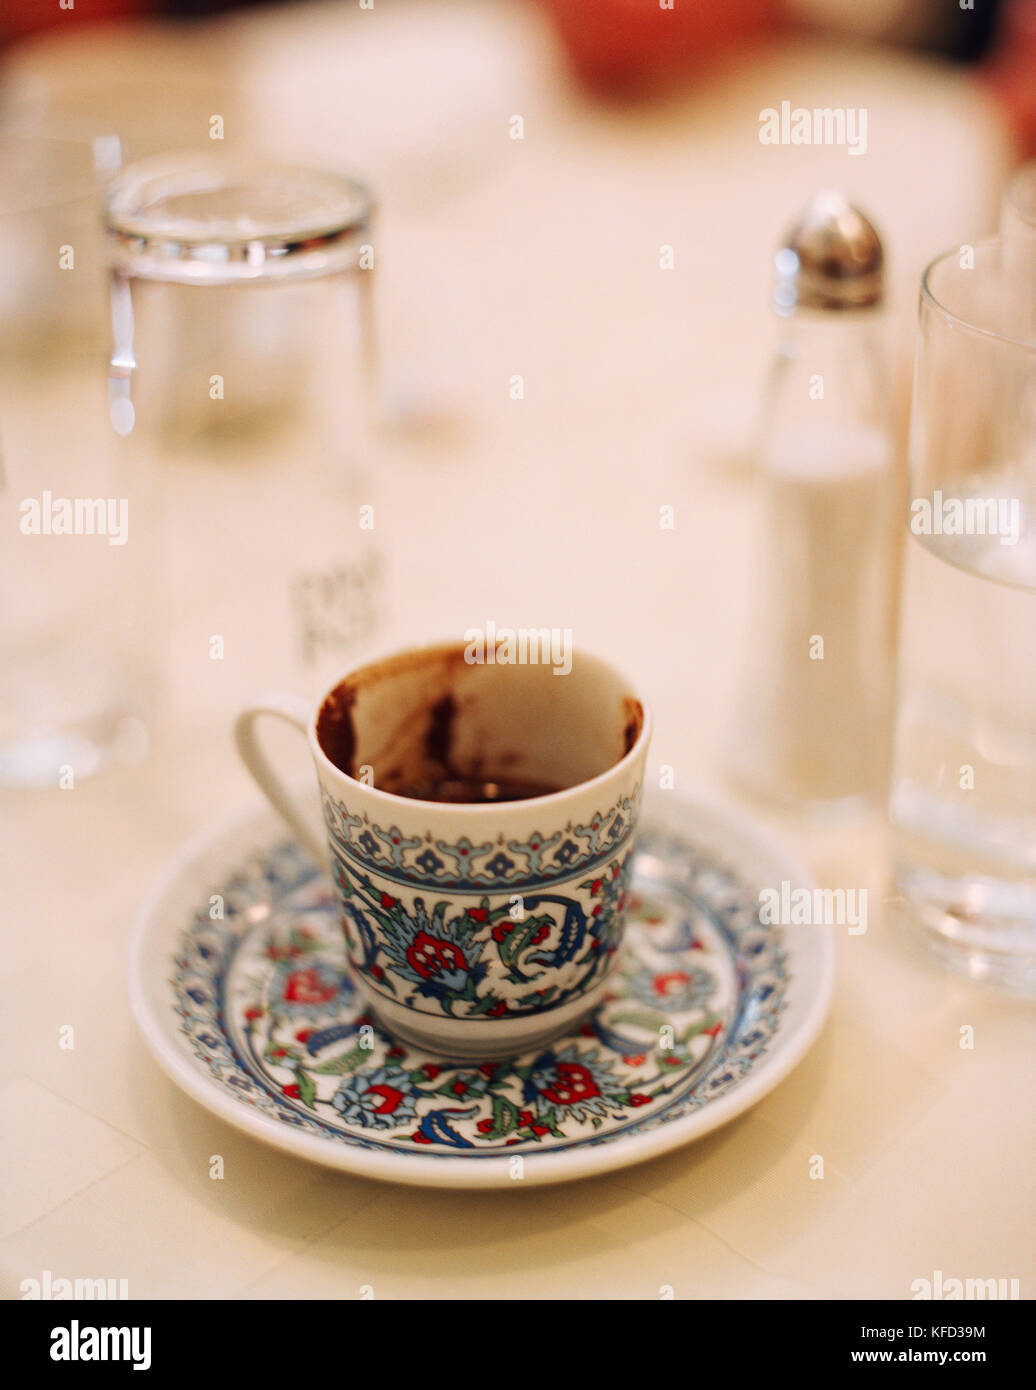 TURKEY, Istanbul, close-up of Turkish coffee cup at Refik Restaurant. - Stock Image